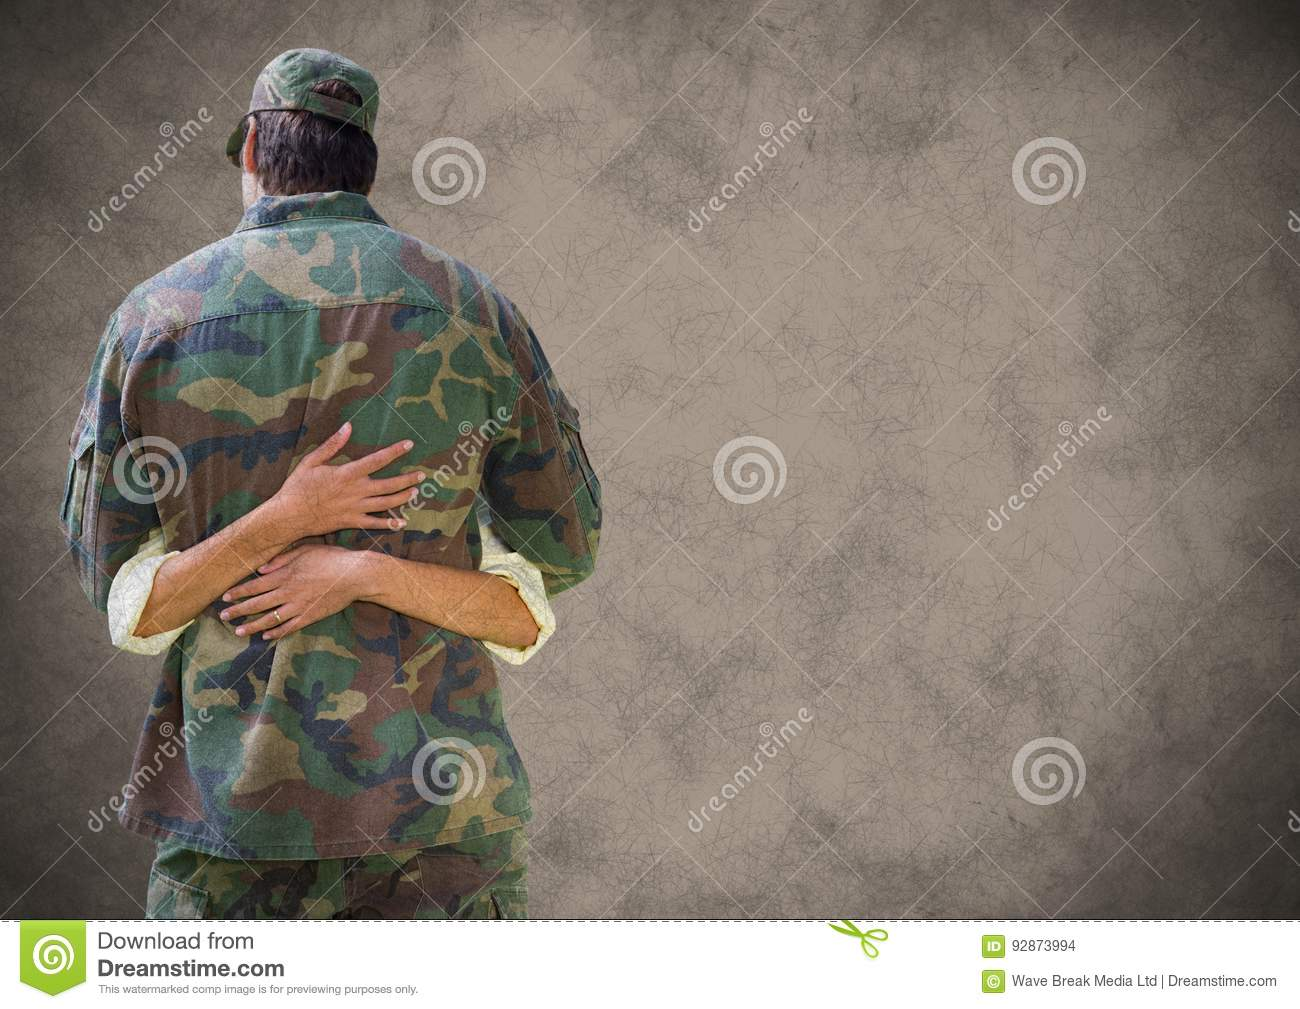 Back of soldier hugging with grunge overlay against brown background